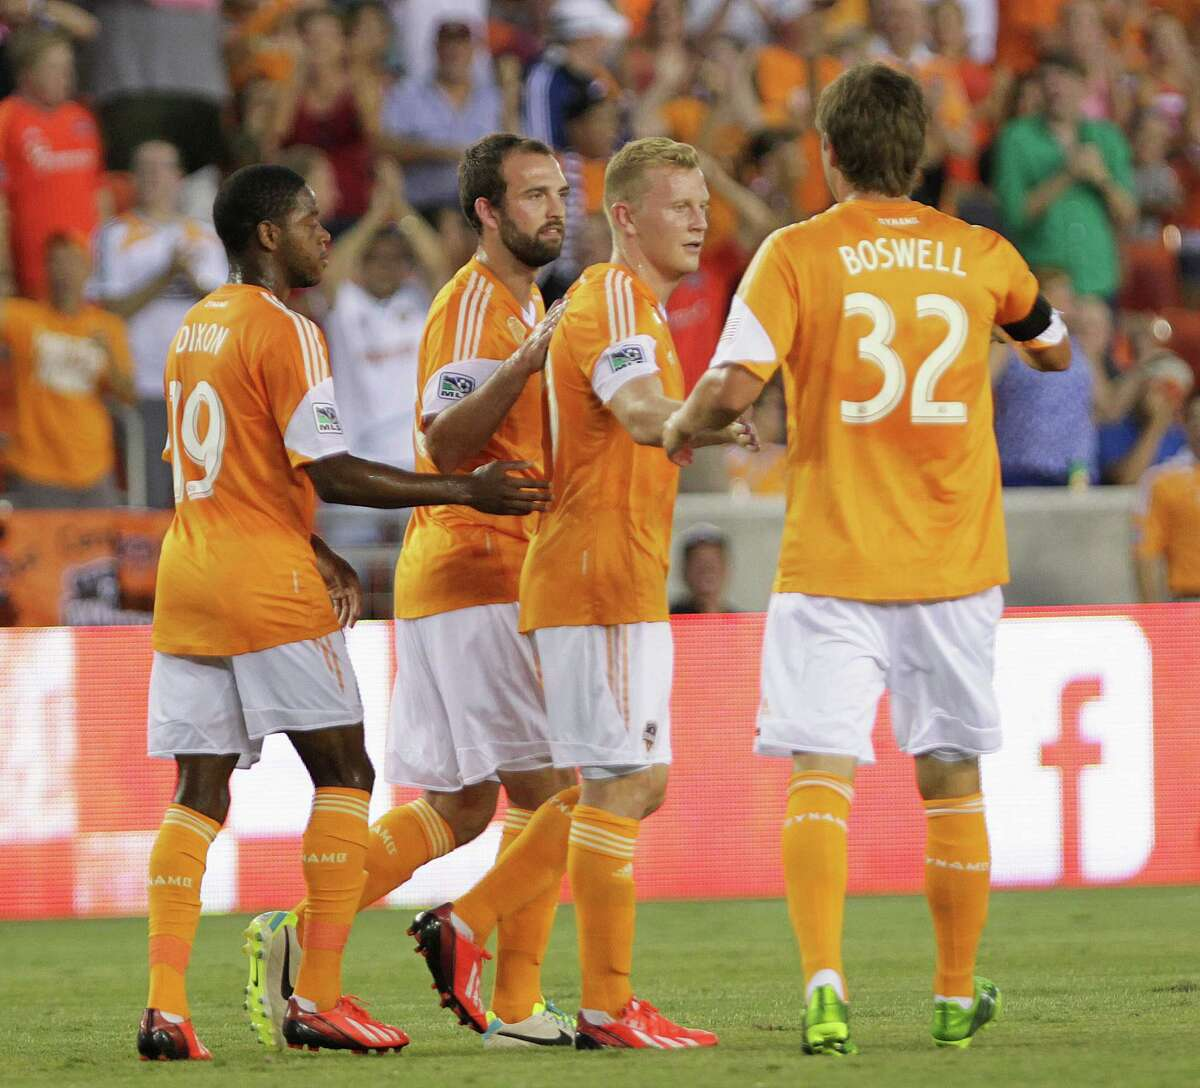 The Houston Dynamo's Andrew Driver 2nd from right, celebrates with teammates after Driver's goal against Stoke City during the first half of the BBVA Compass Dynamo Charities Cup match at BBVA Compass Stadium Wednesday, July 24, 2013, in Houston.